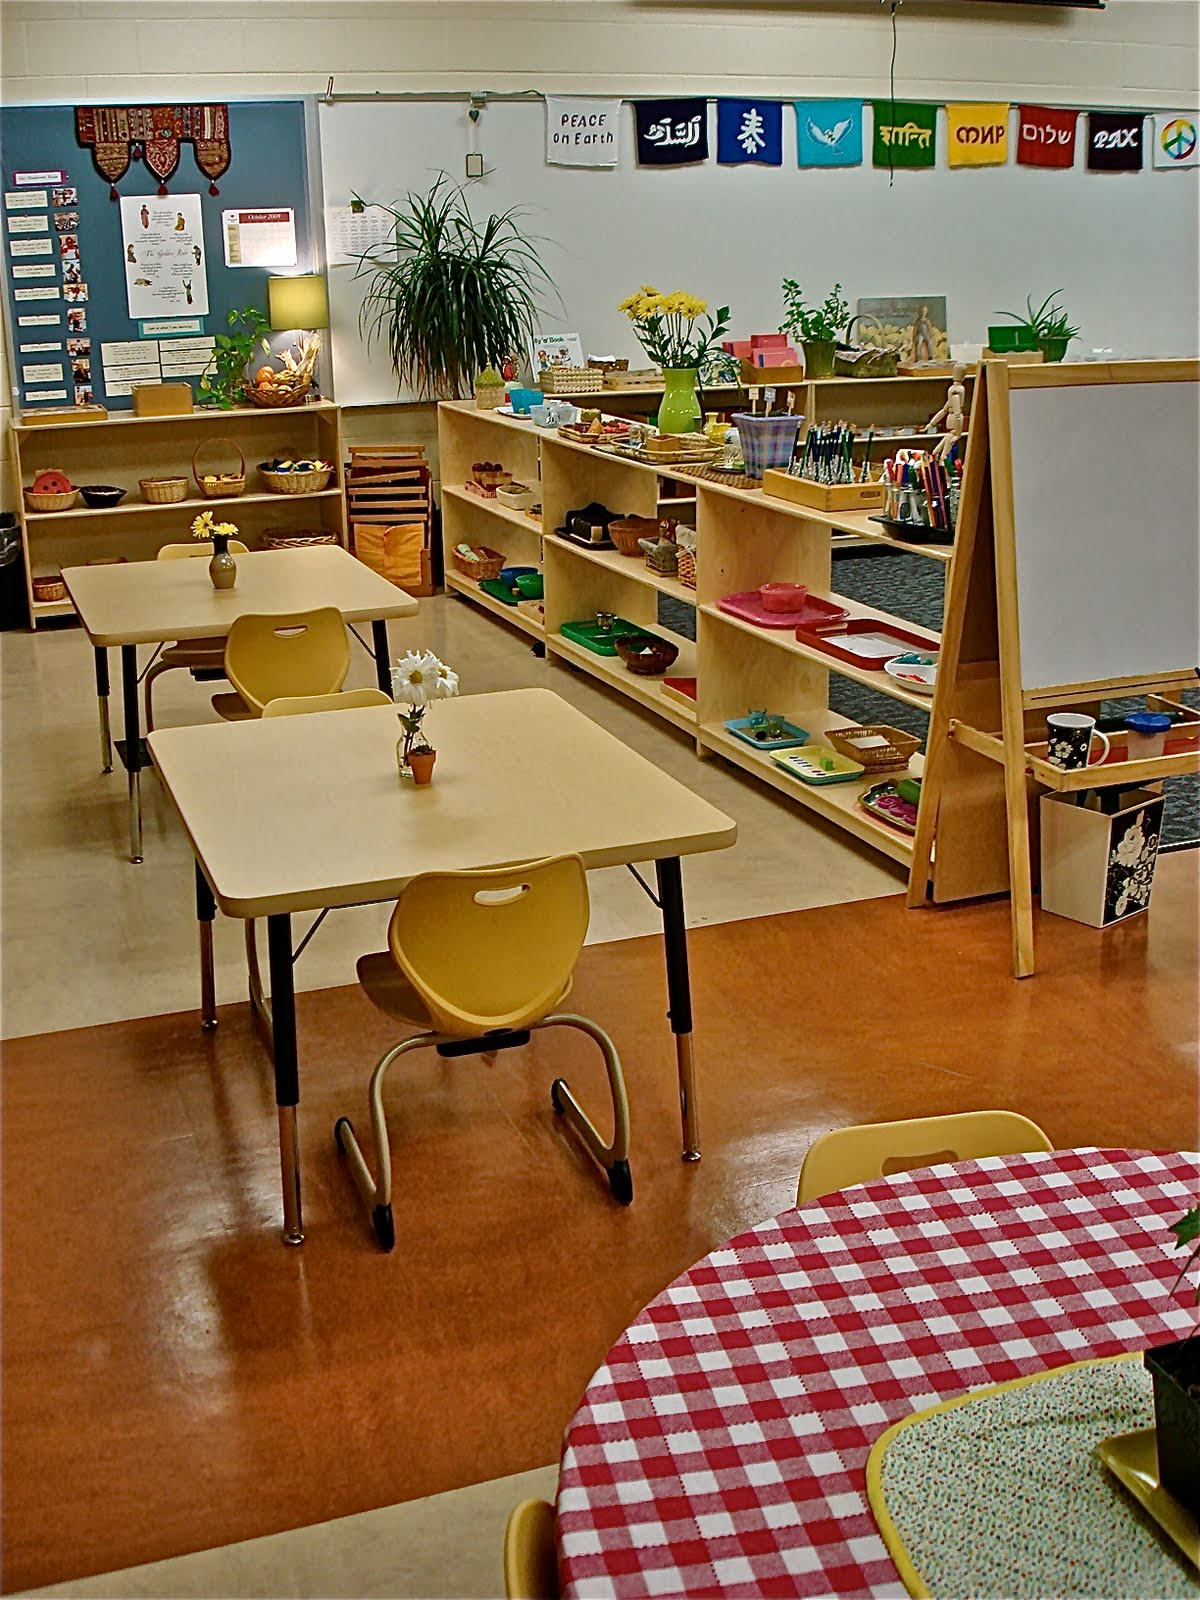 Classroom Decoration Ideas For Montessori ~ The brilliant child april